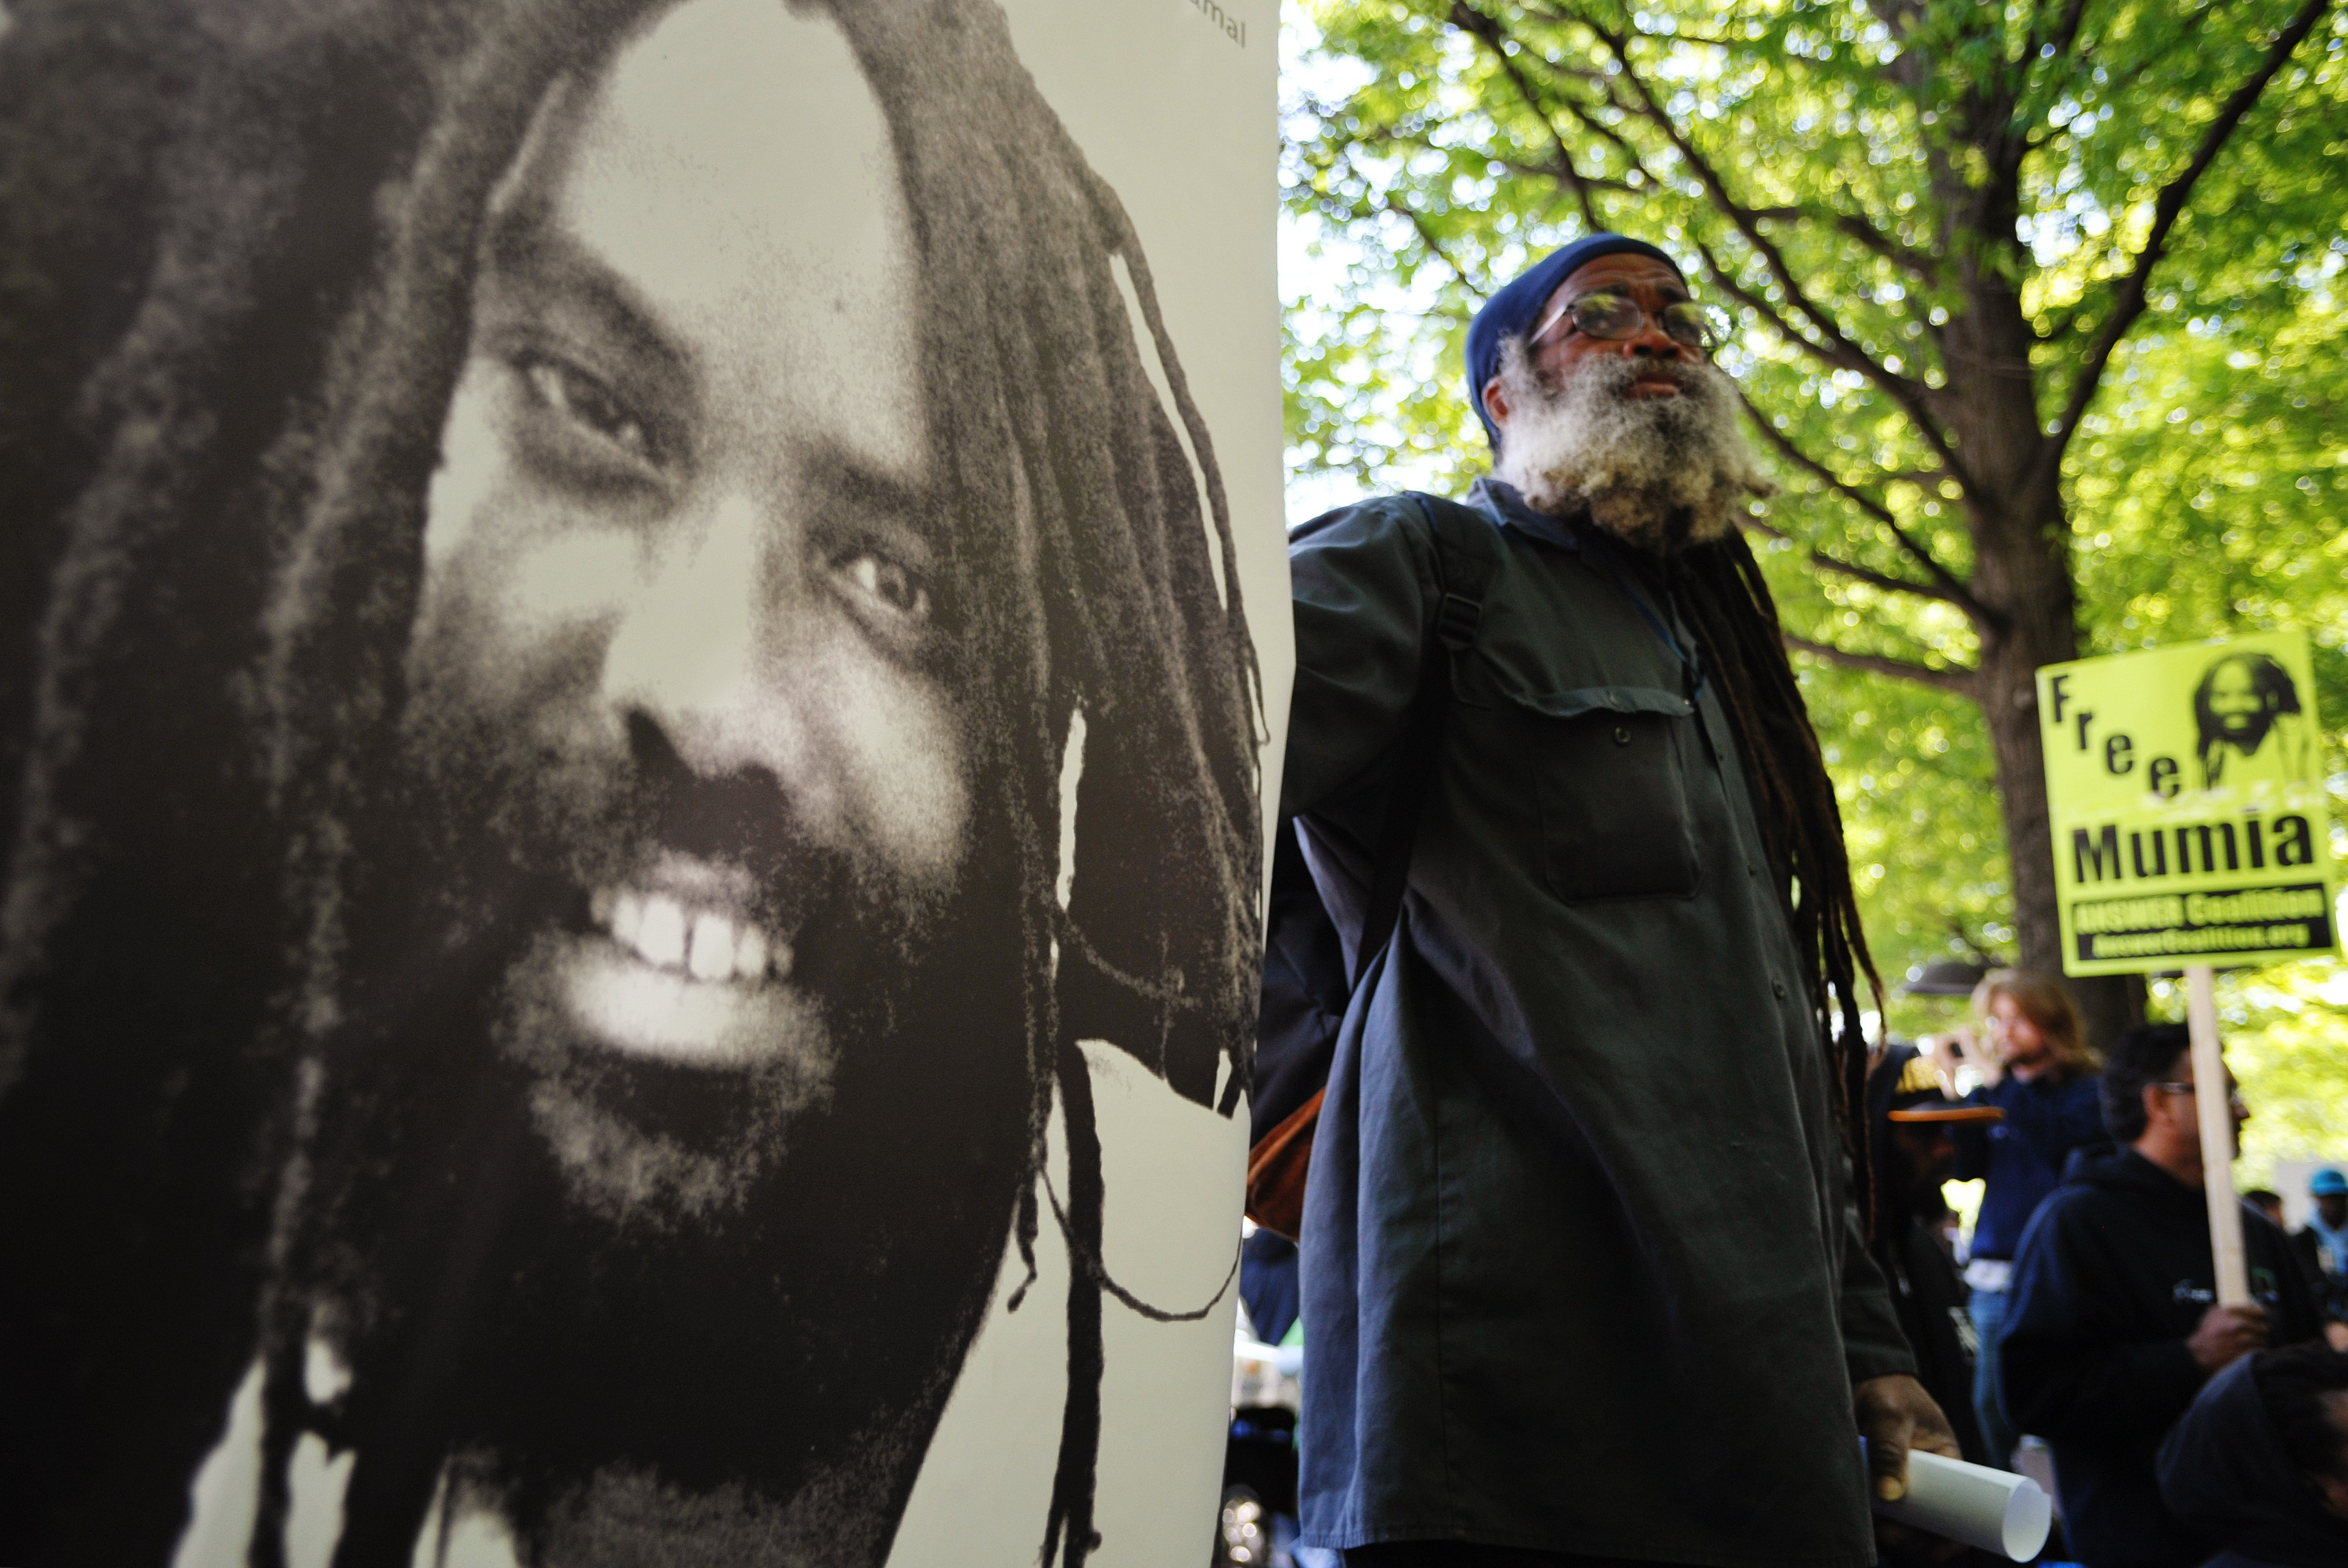 A protester stands next to an image of Mumia Abu-Jamal  outside the US Department of Justice  on April 24, 2012 in Washington, DC. (Getty)